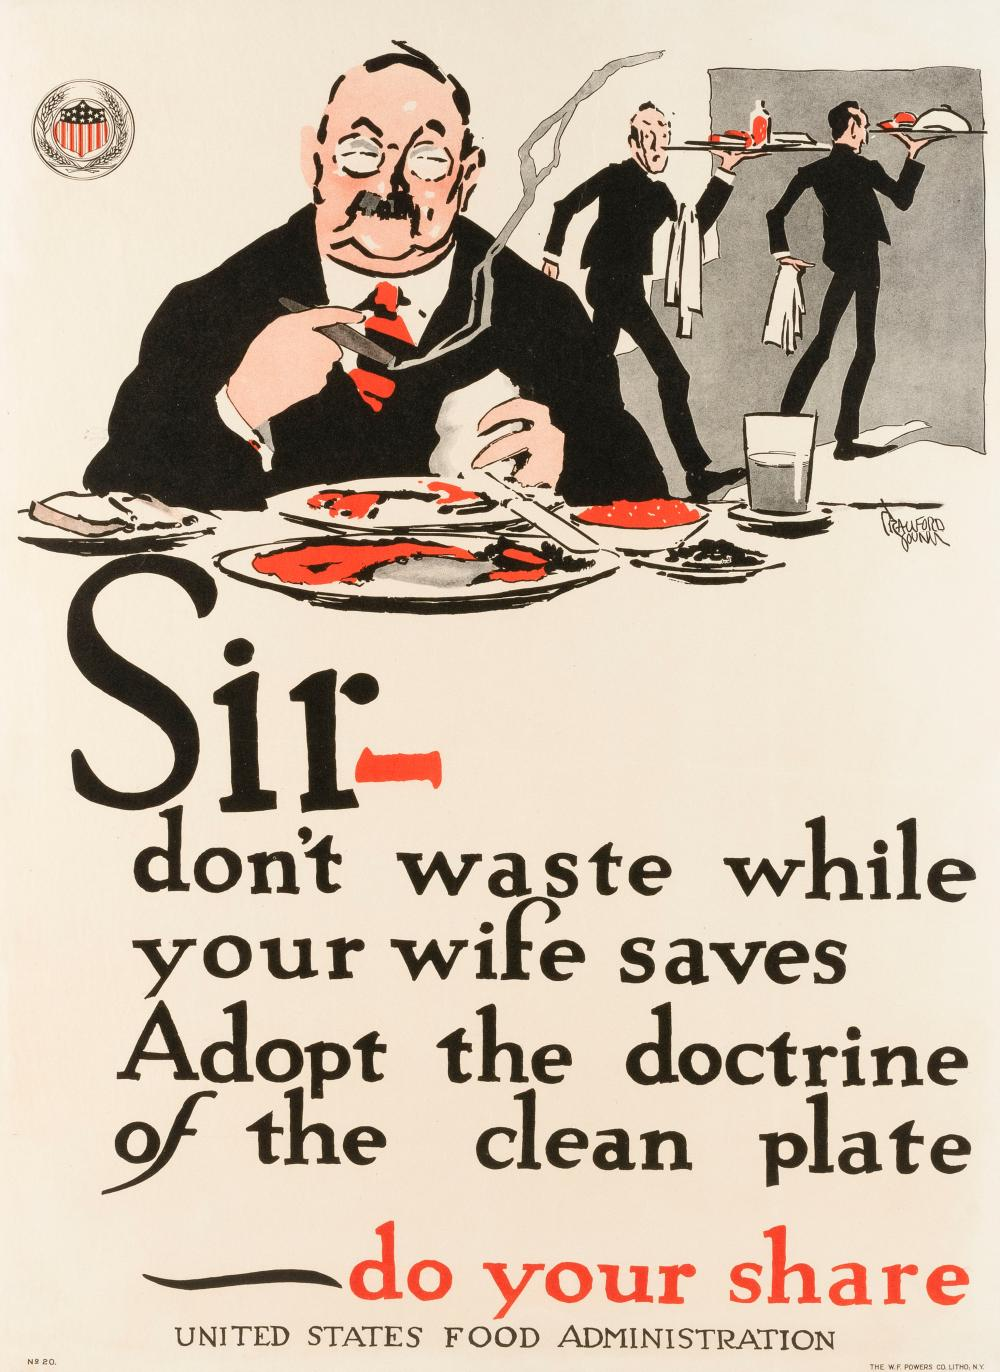 """""""SIR - DON'T WASTE WHILE YOUR WIFE SAVES ADOPT THE DOCTRINE OF THE CLEAN PLATE - DO YOUR SHARE"""" WORLD WAR I POSTER By William Crawfo.."""